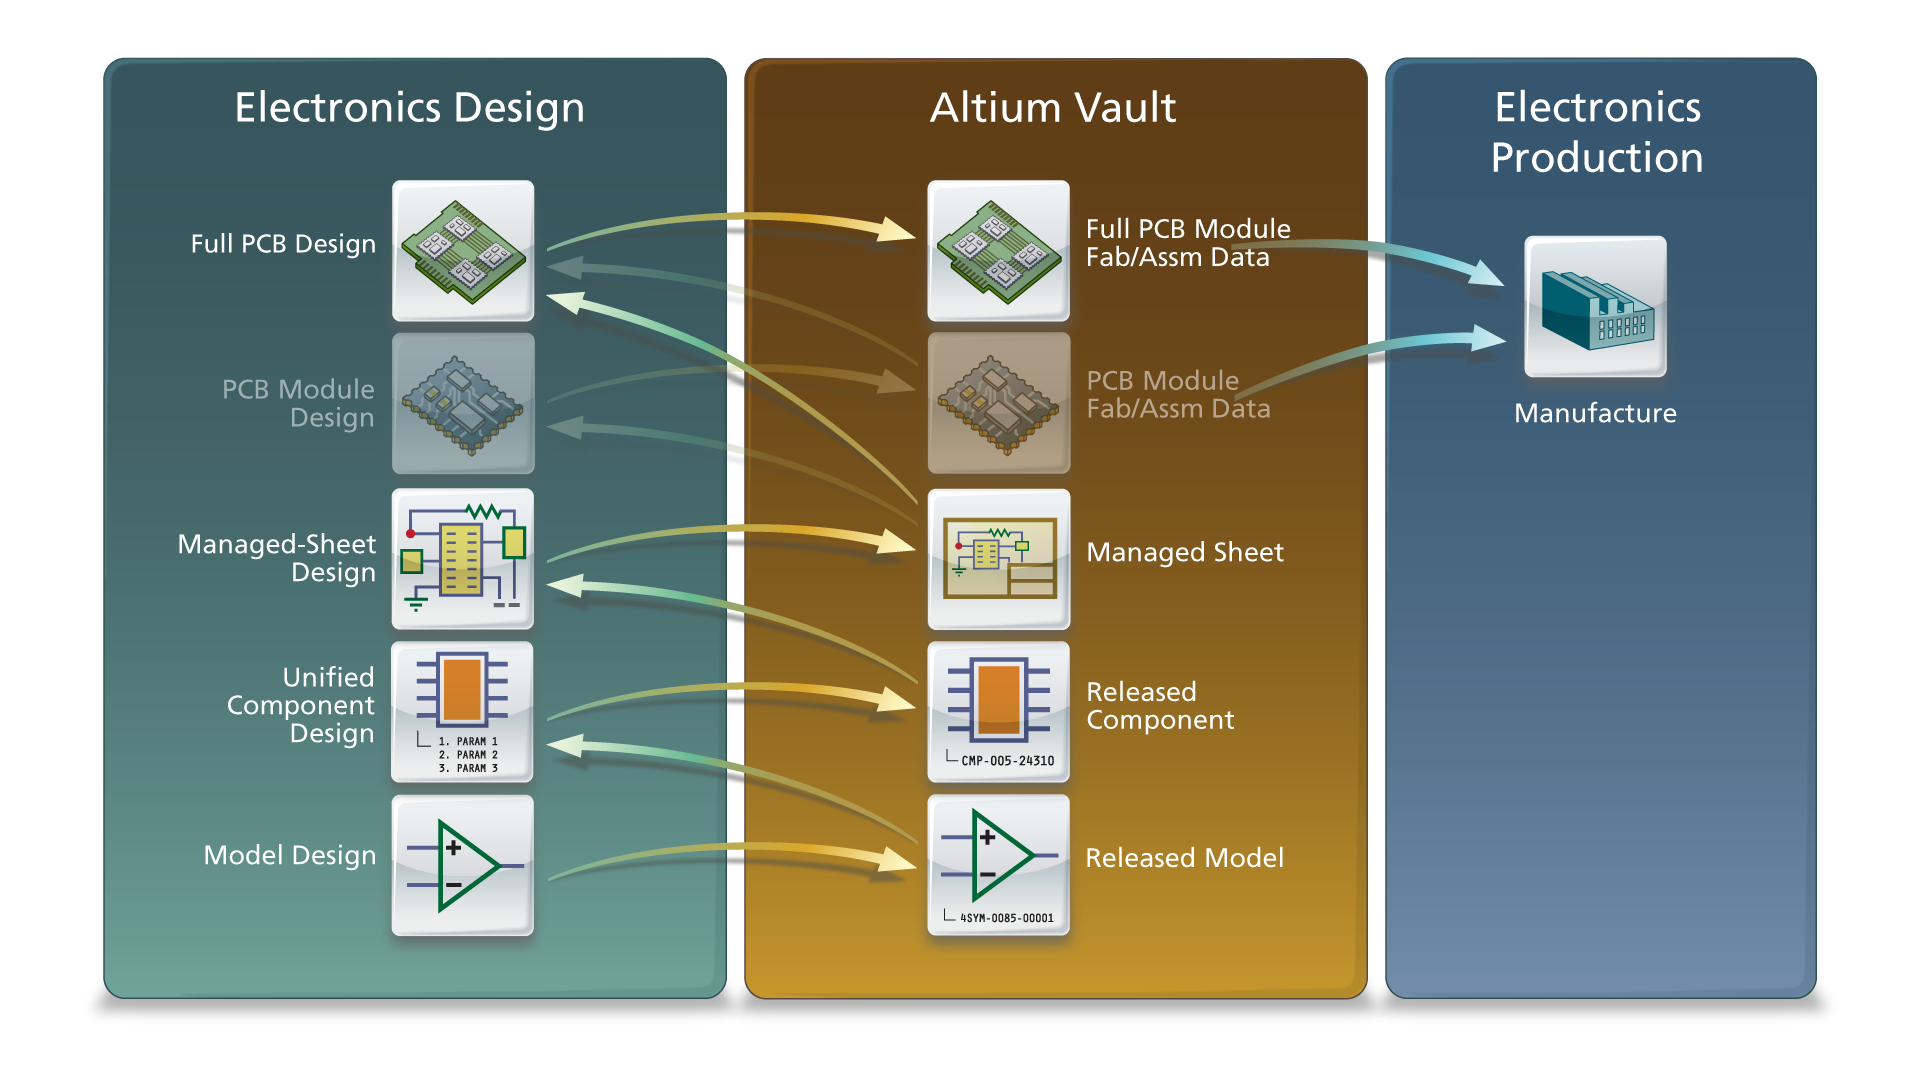 vault driven electronics design online documentation for altium